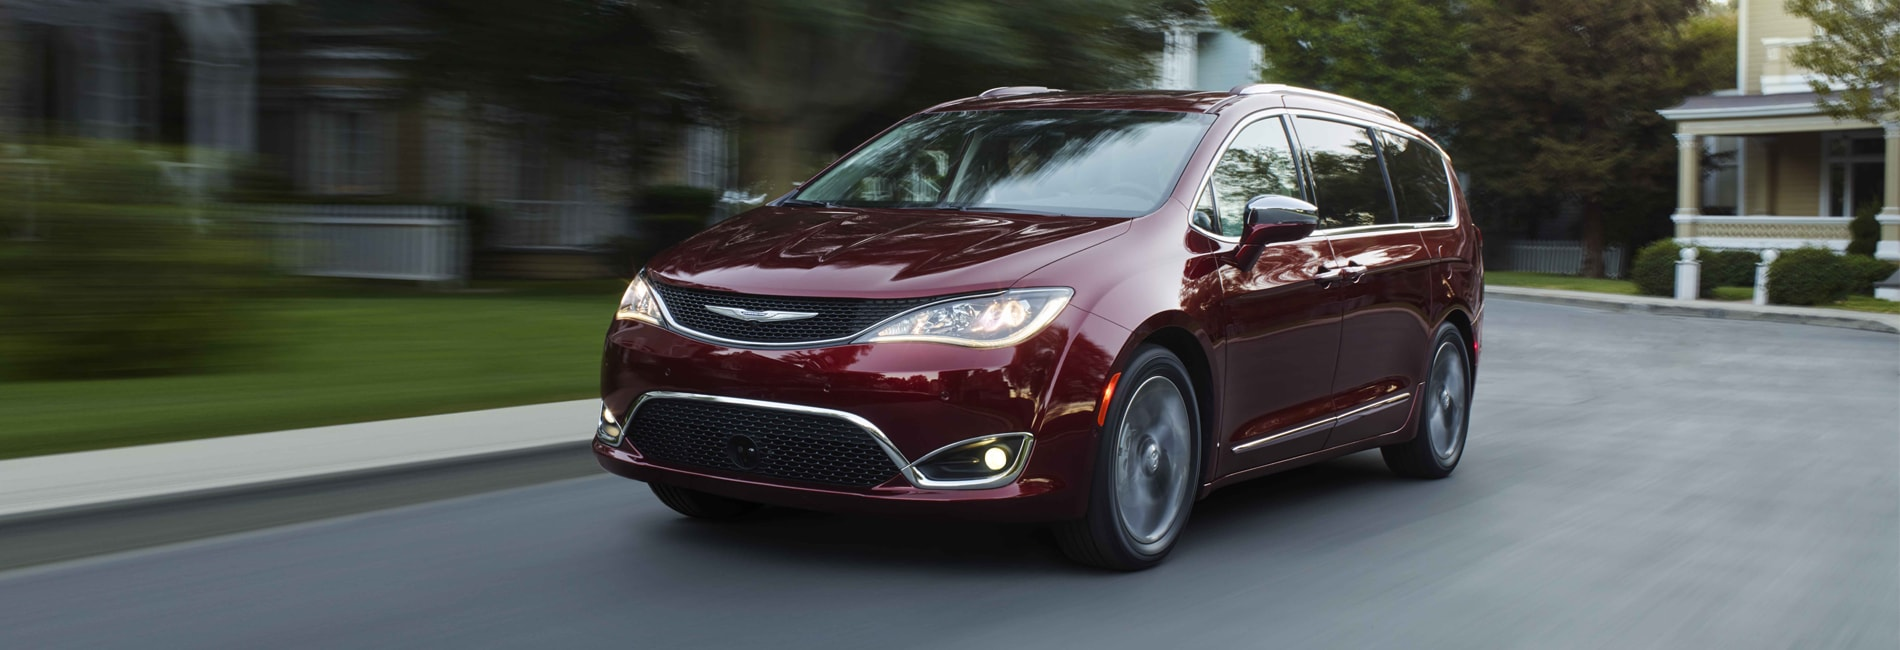 Chrysler Pacifica Interior and Exterior Vehicle Features